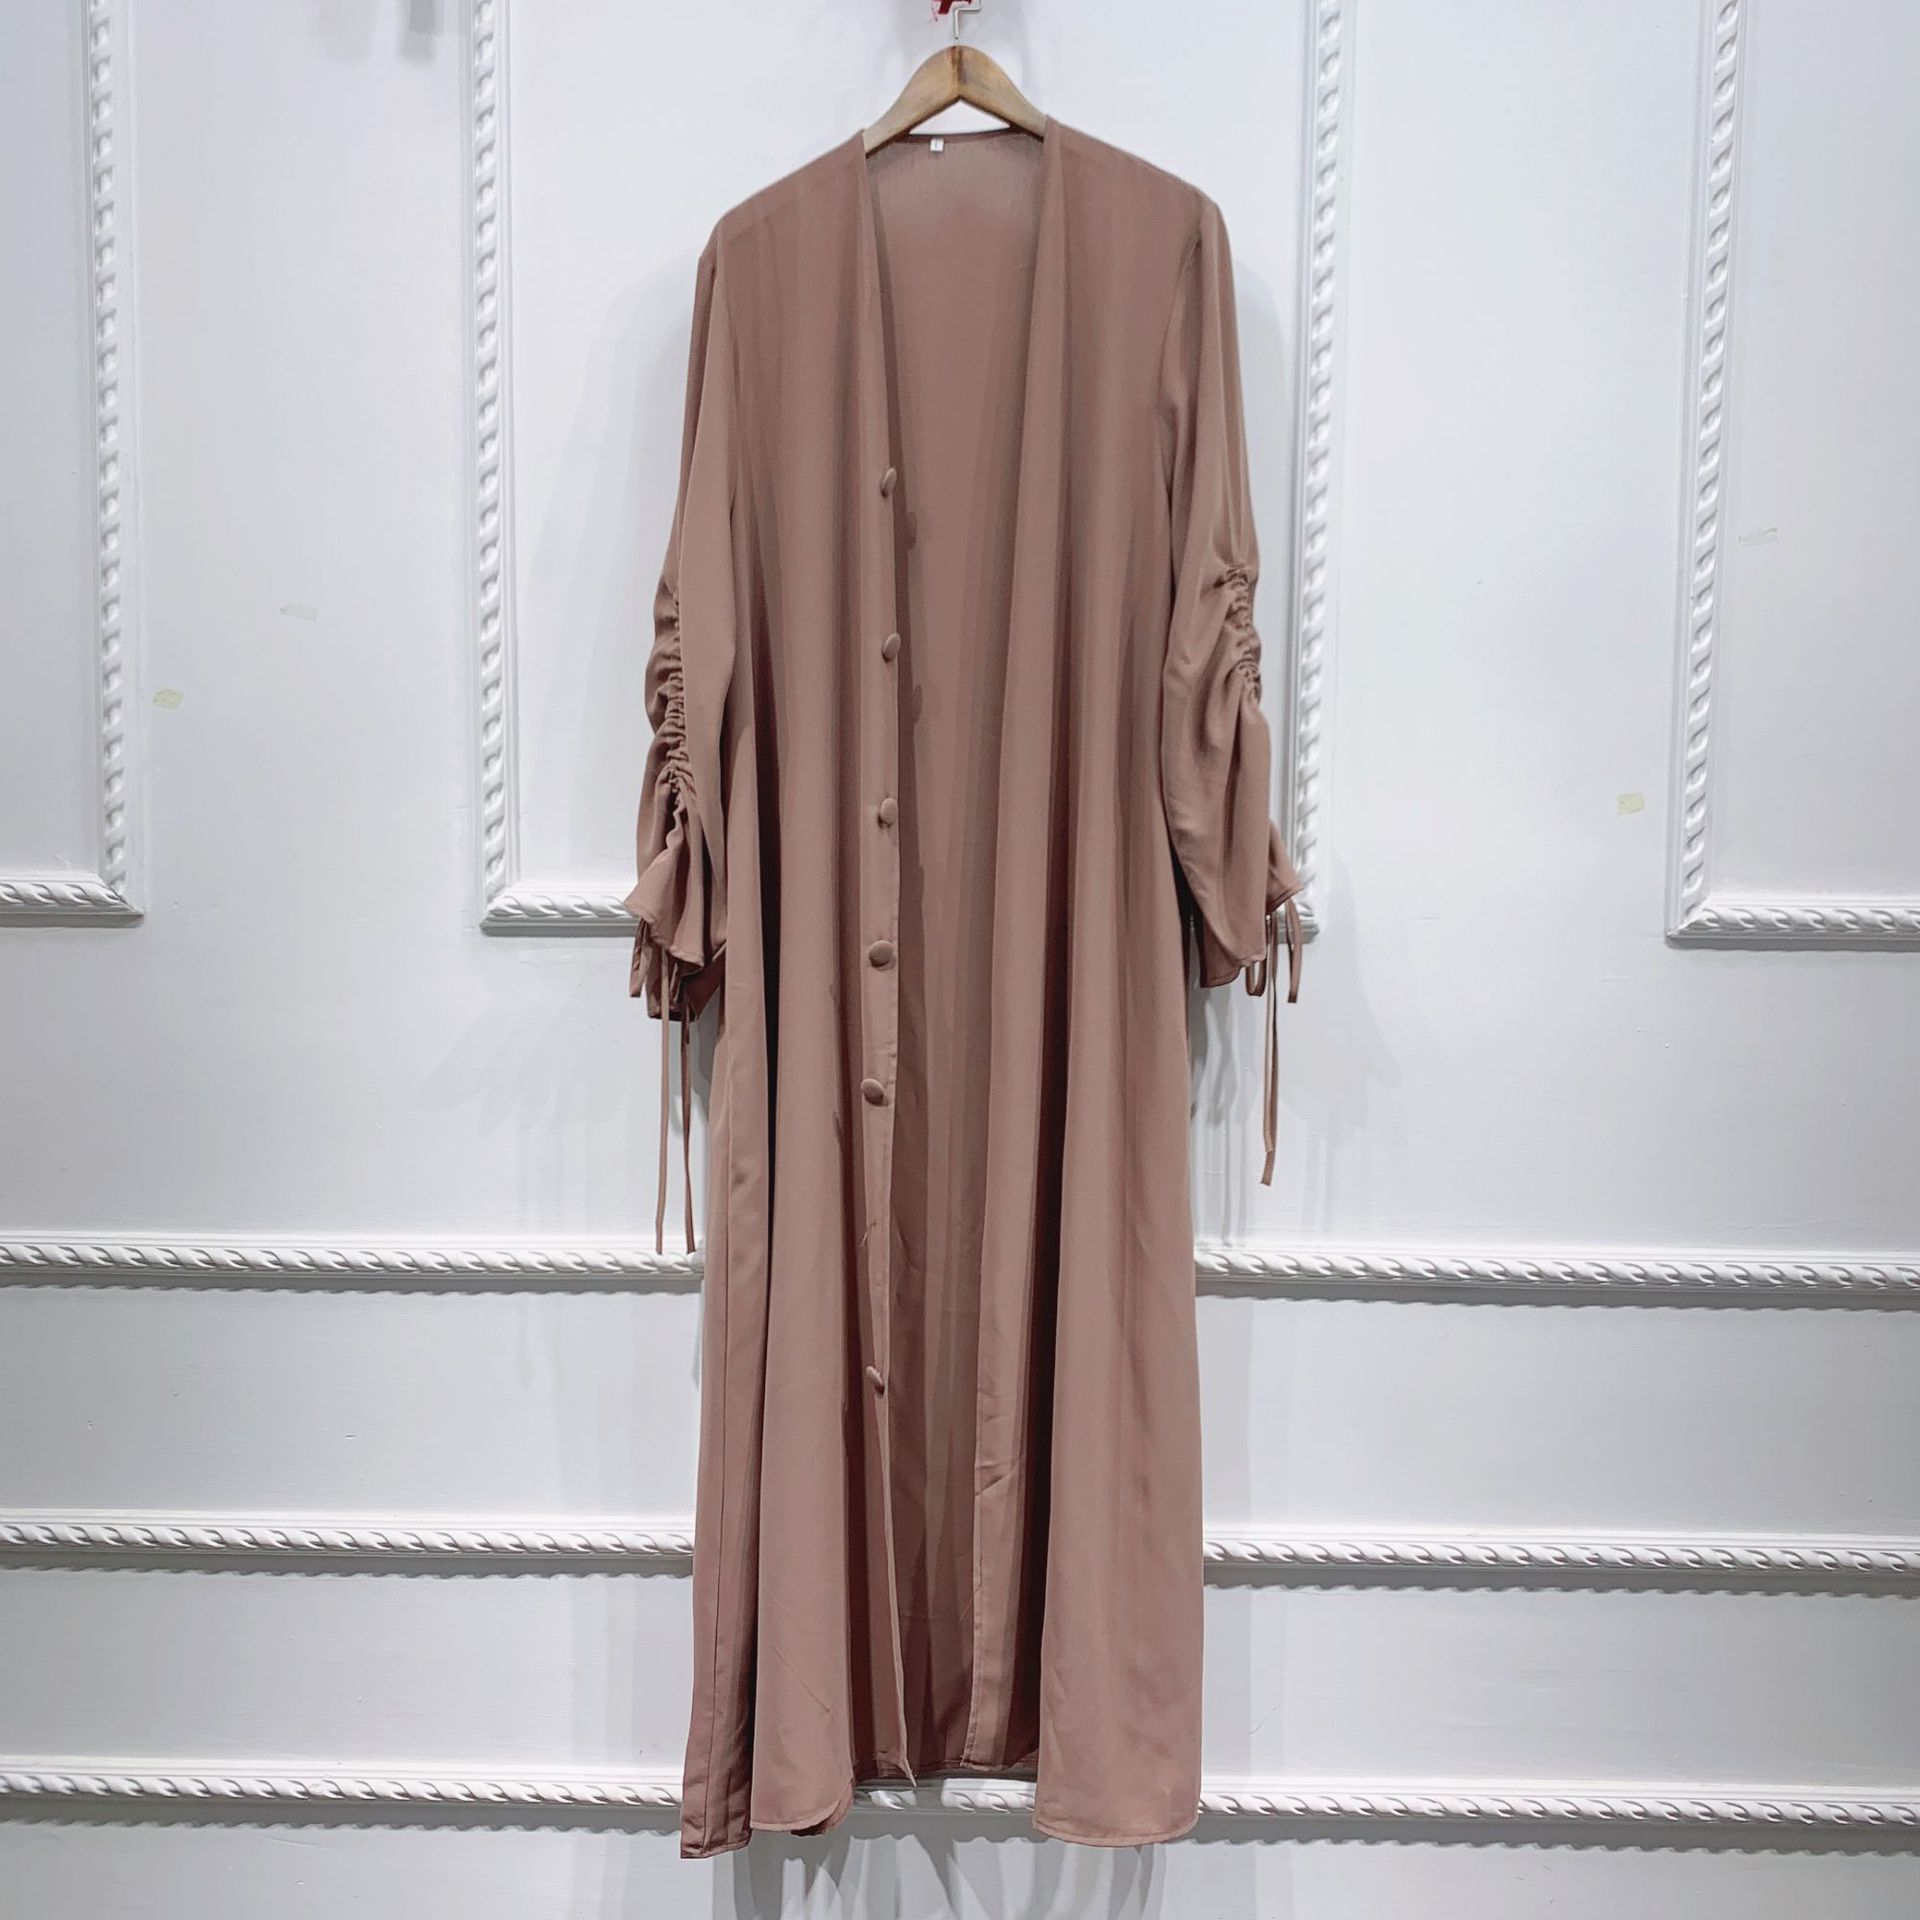 2021 Dubai Middle East muslim party summer dress and stitching sleeved cardigan women's robe Open Abaya